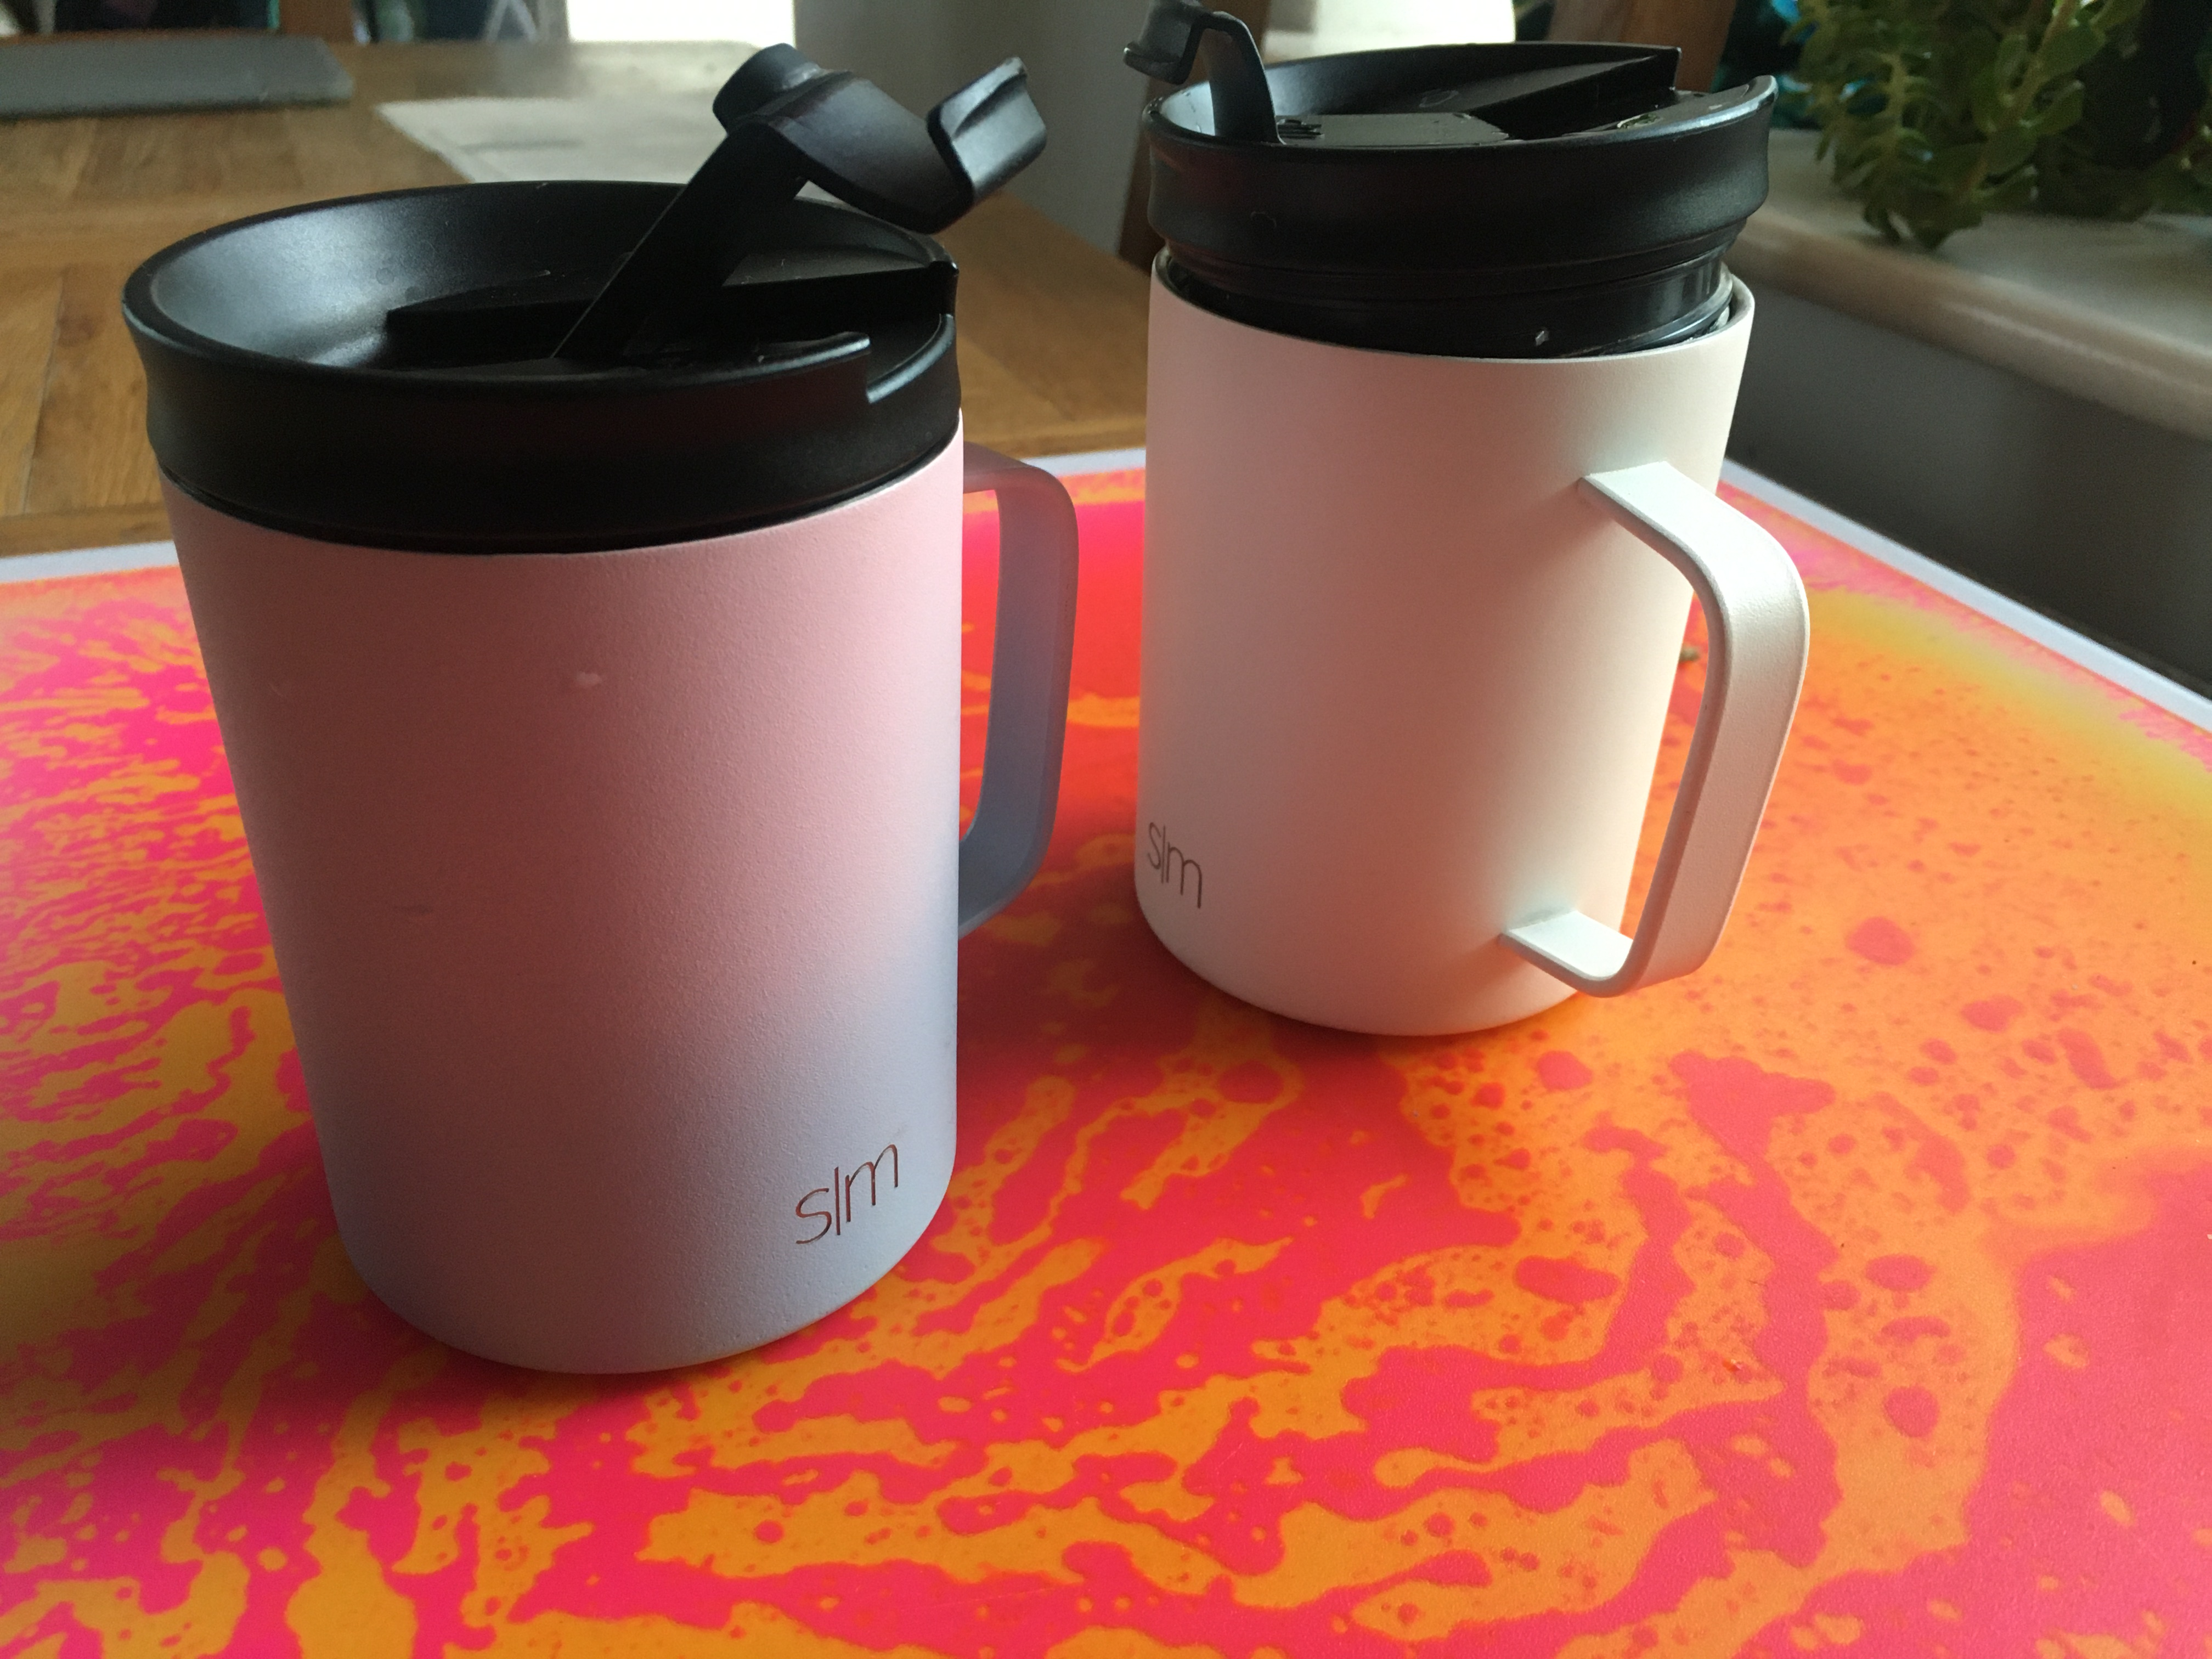 photo of two lidded cups on a fluorescent orange and pink table. One cup is pink and blue gradient with a black lid. The other cup is white with a black lid.